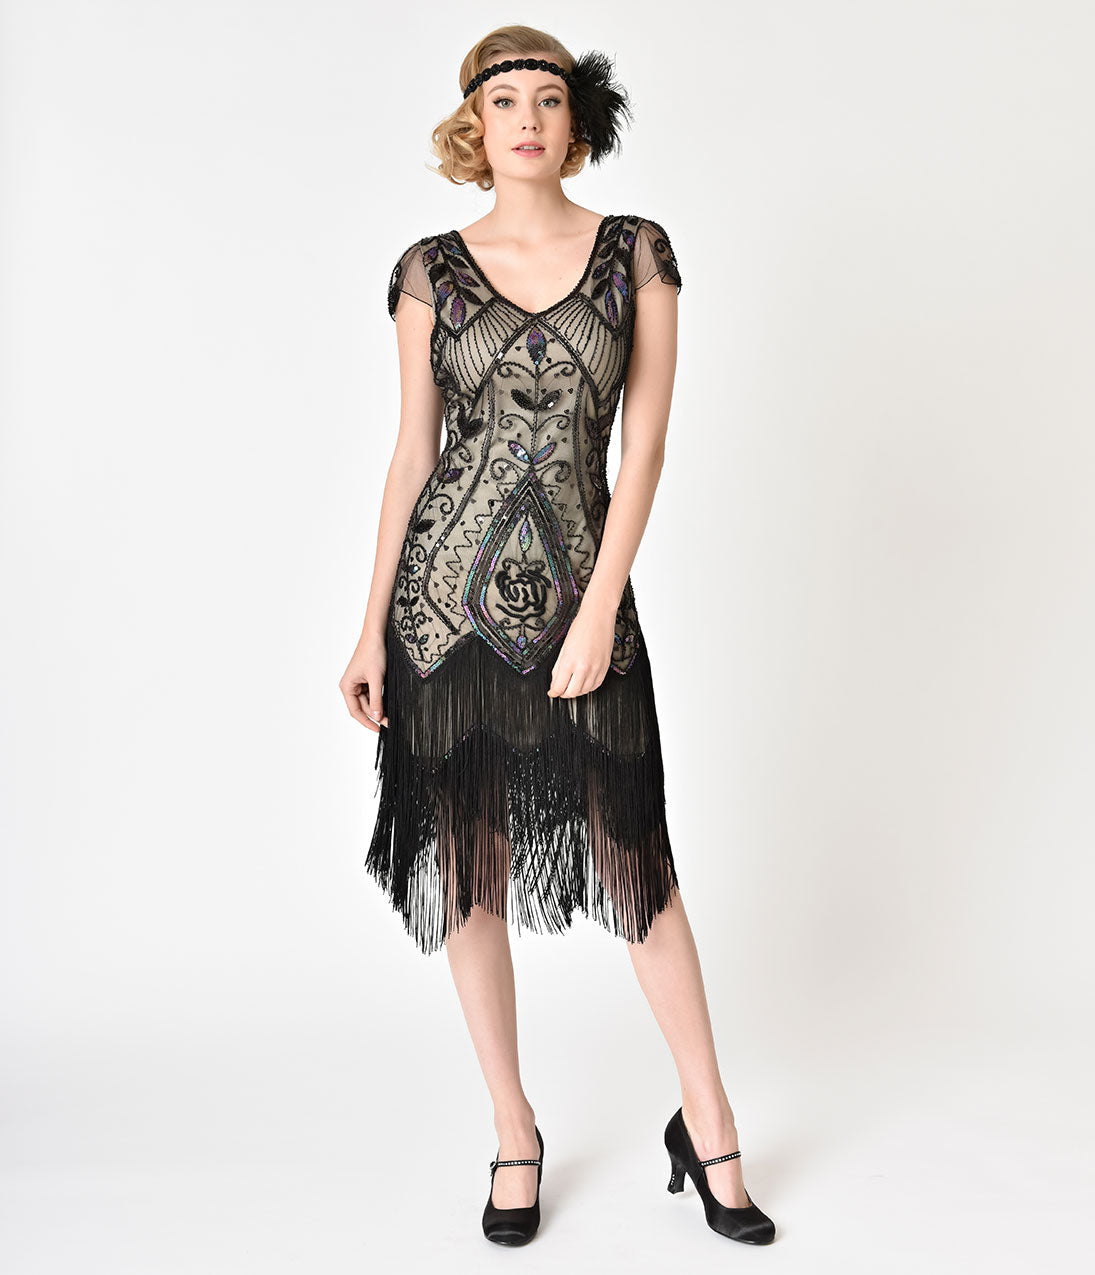 Flapper Costumes, Flapper Girl Costume Unique Vintage 1920S Black Rose  Champagne Noele Fringe Flapper Dress $74.00 AT vintagedancer.com